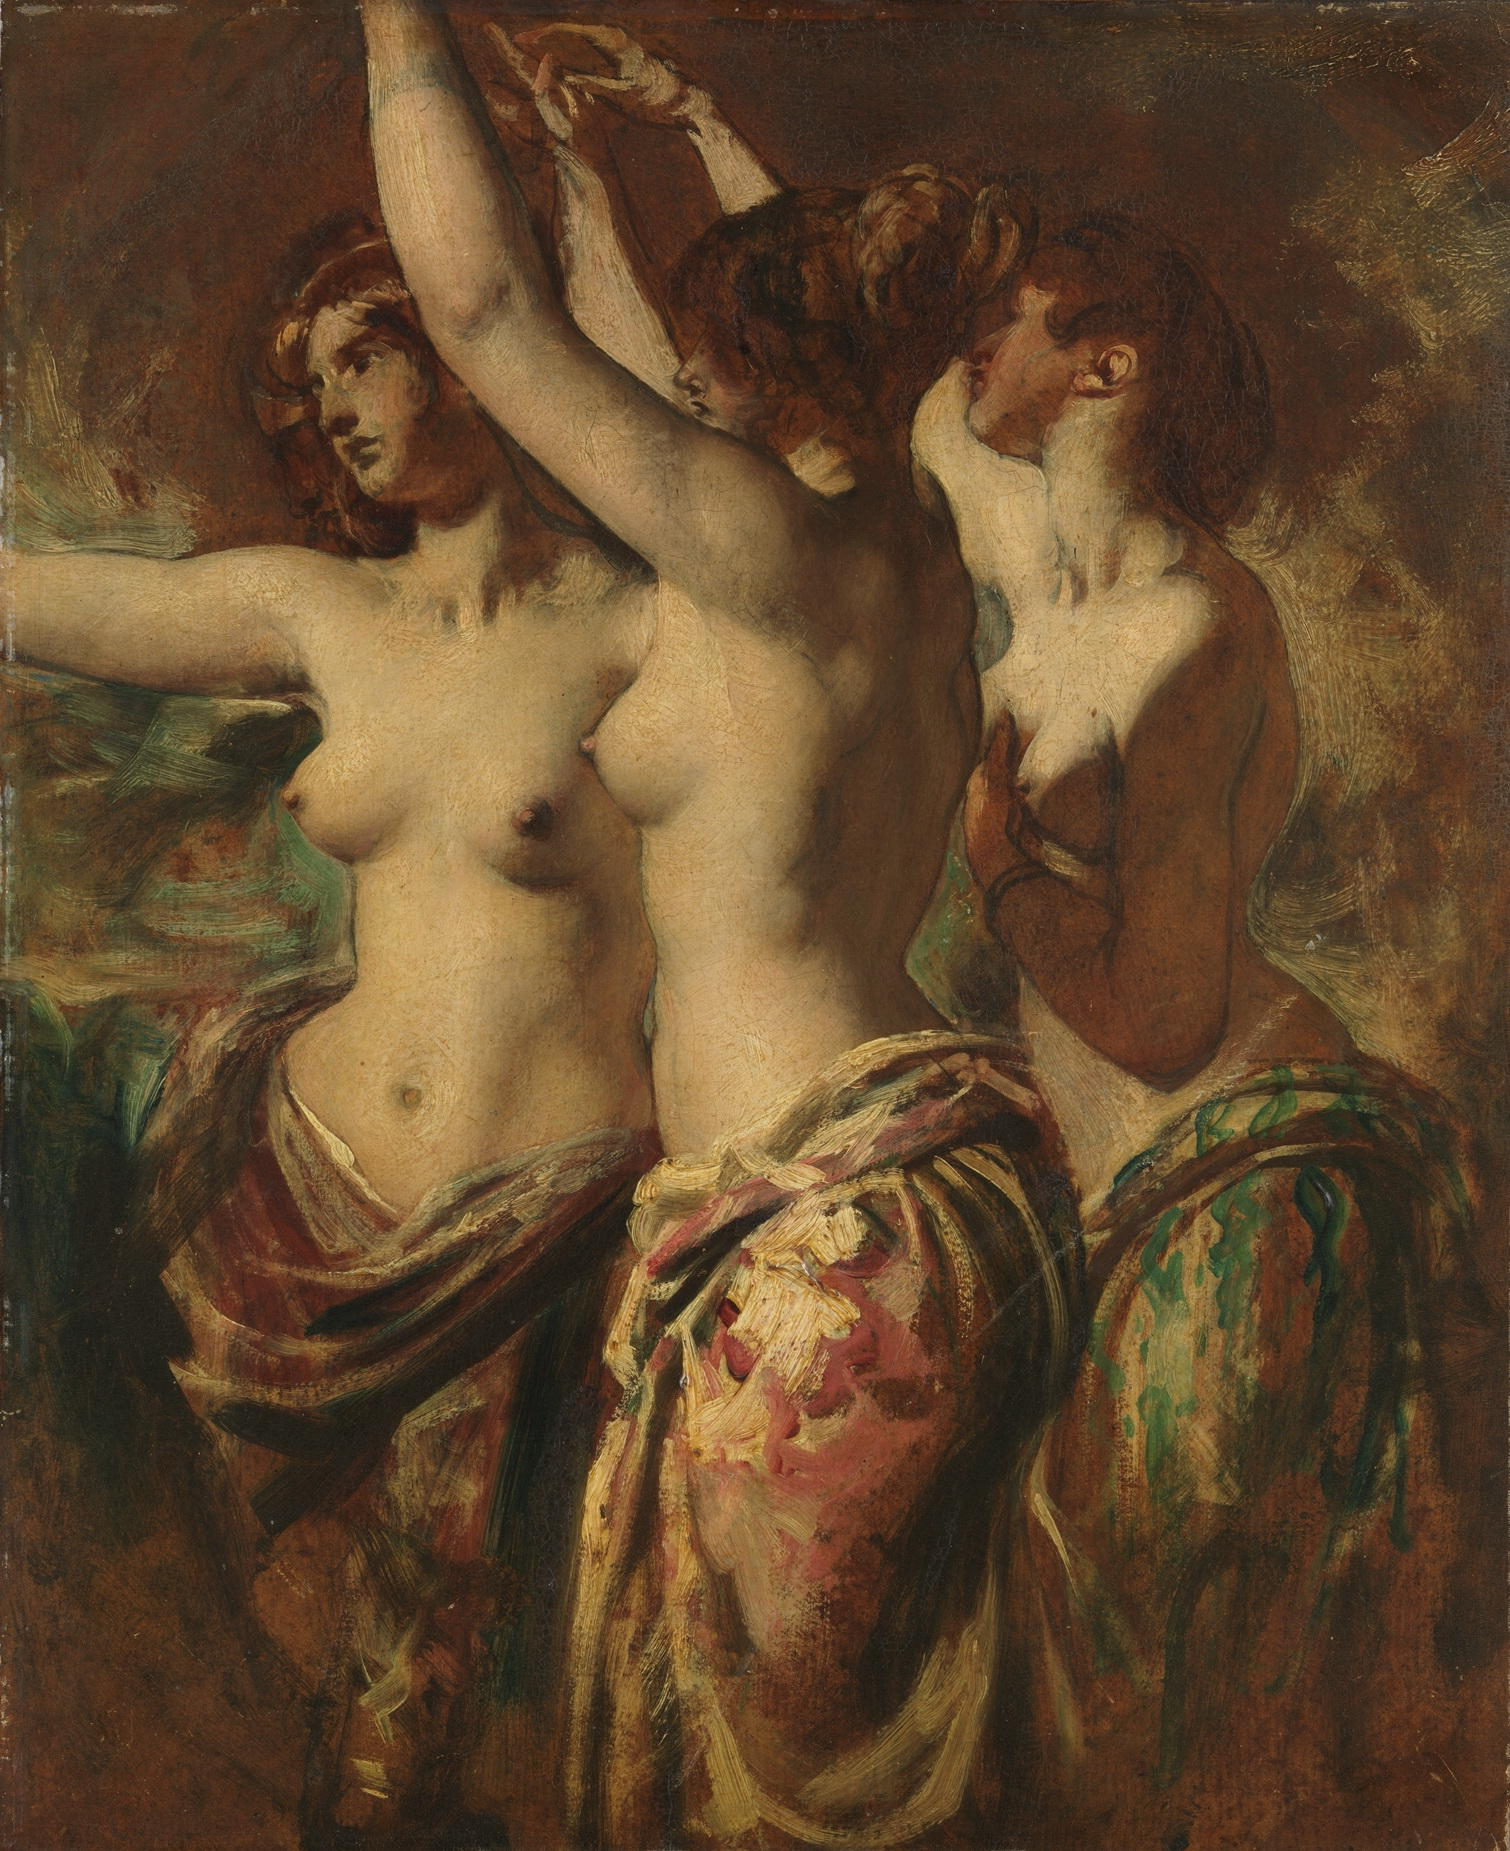 William Etty, 1787-1849. Три грации. 57.2 x 47.6 см. Нью-Йорк, Метрополитен